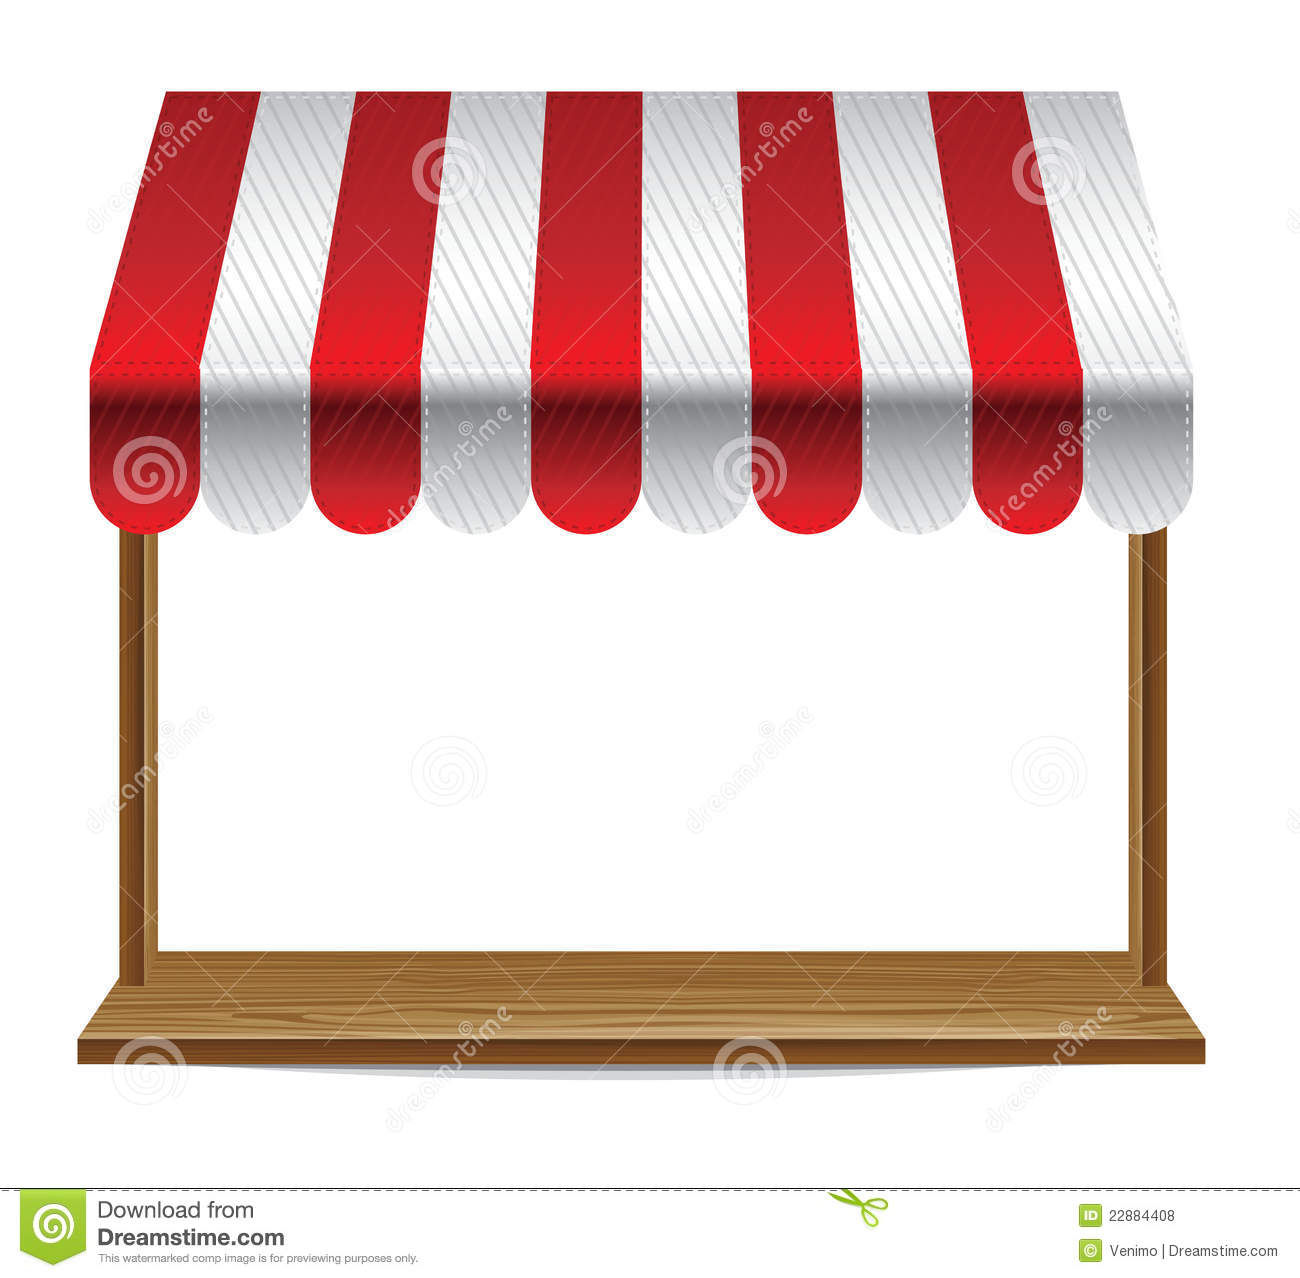 Awning clipart #9, Download drawings